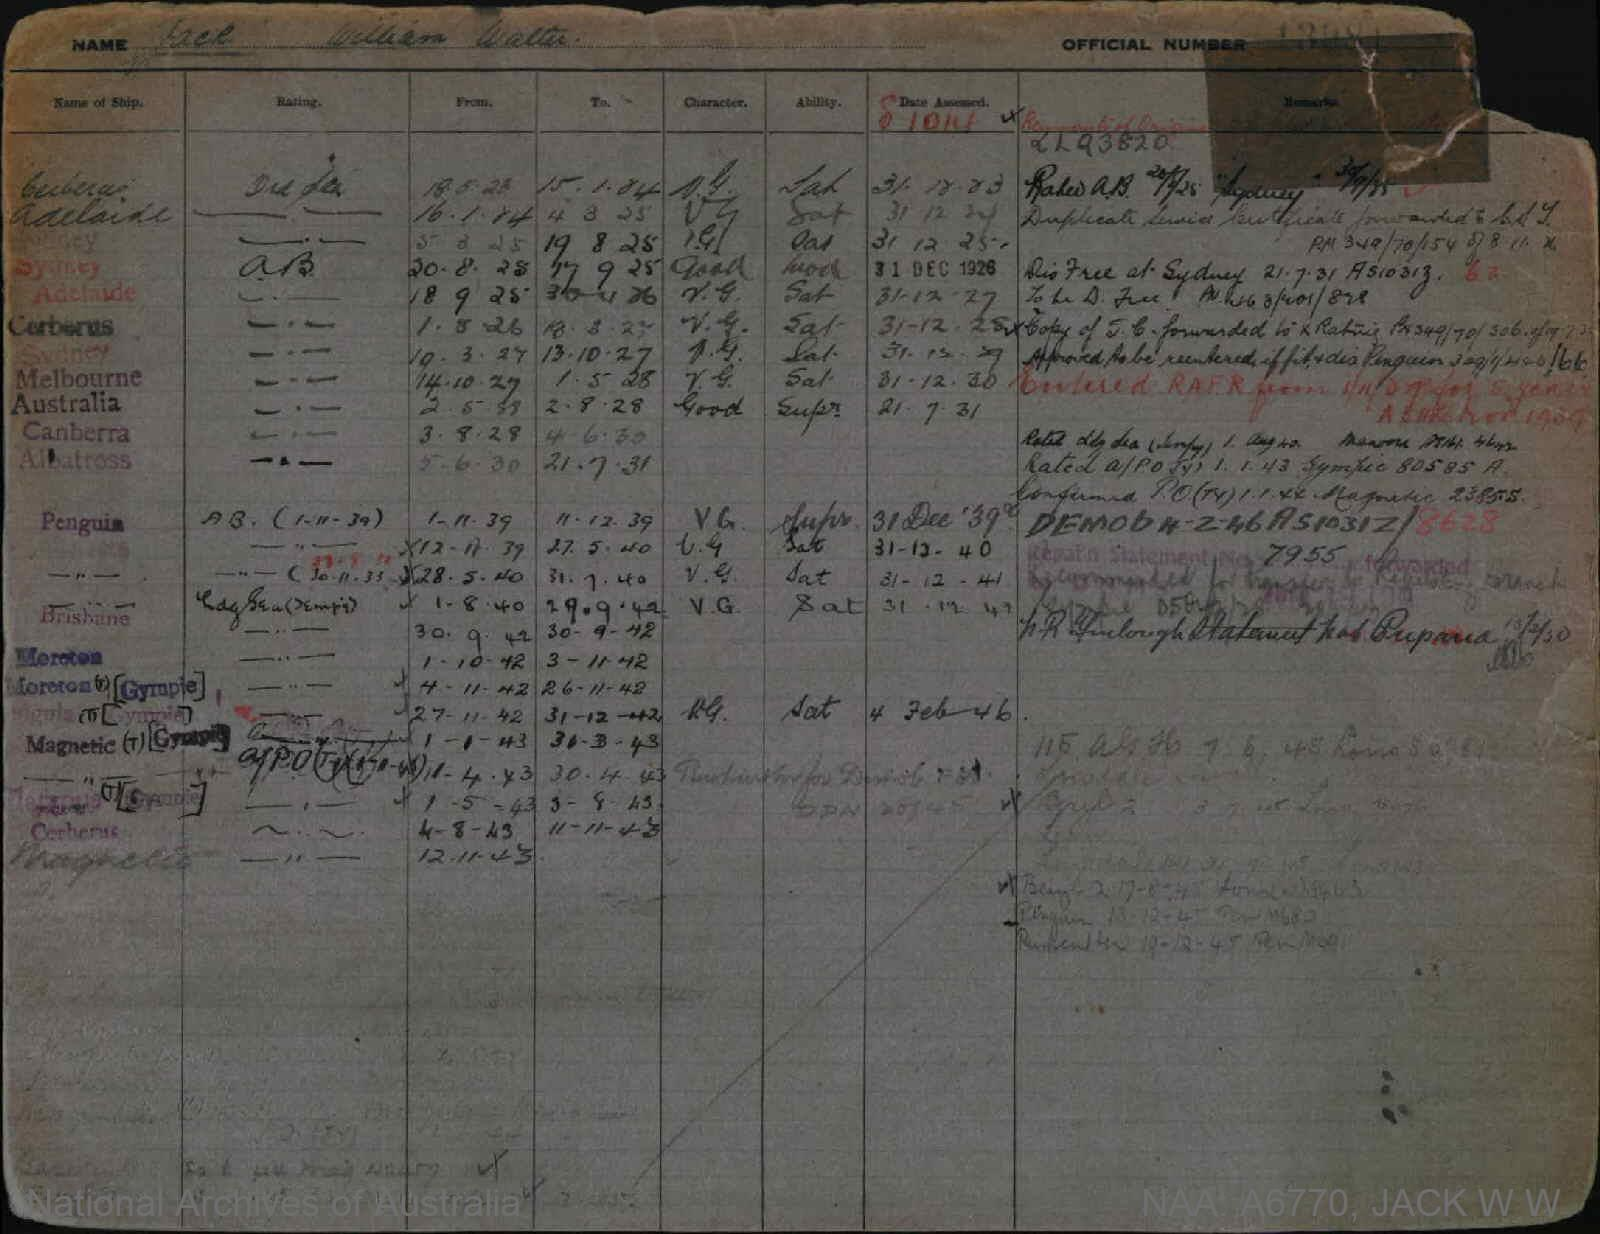 JACK WILLIAM WALTER : Service Number - 13981 : Date of birth - 02 Mar 1904 : Place of birth - SYDNEY NSW : Place of enlistment - SYDNEY : Next of Kin - JOSEPHINE